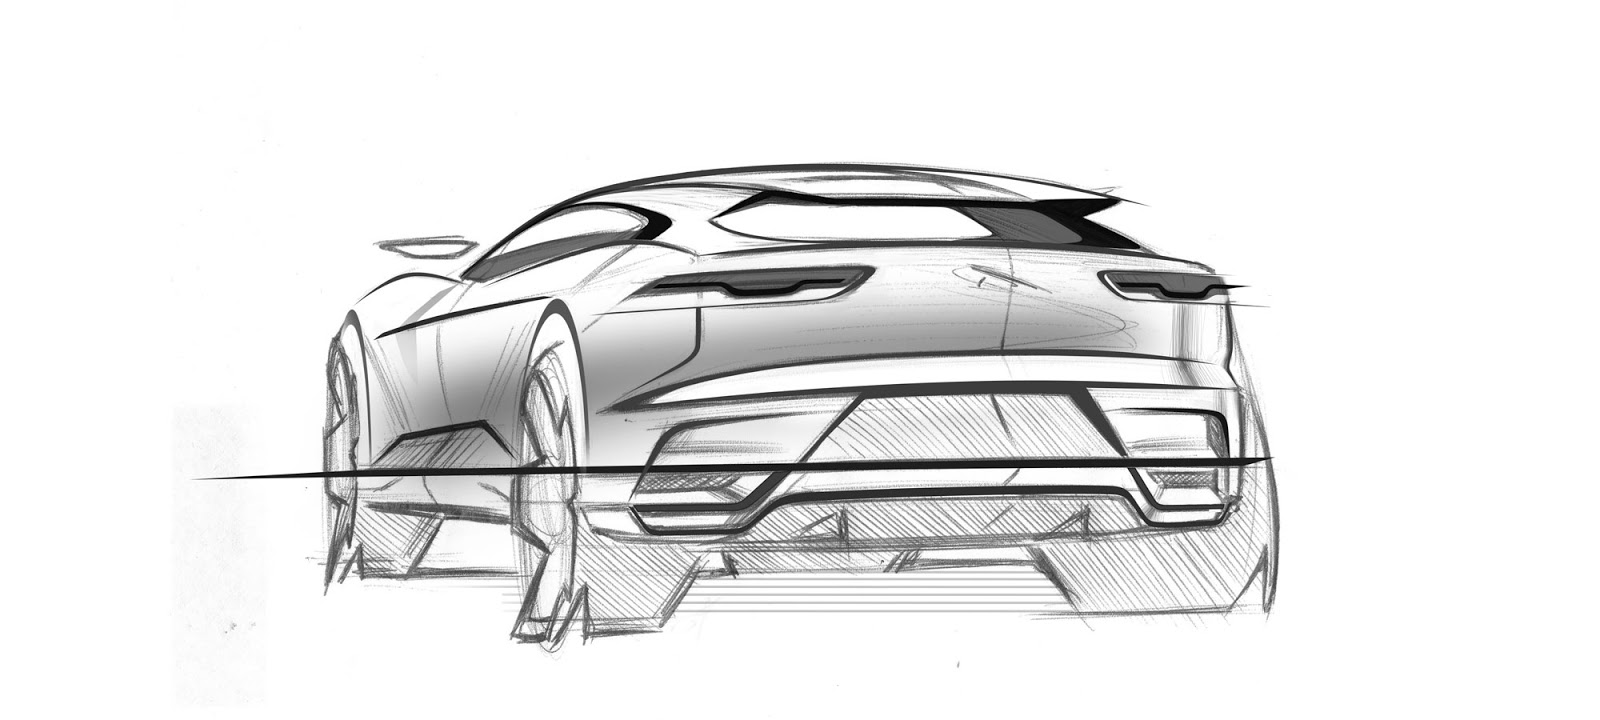 Jaguar I-Pace pencil sketch - rear view